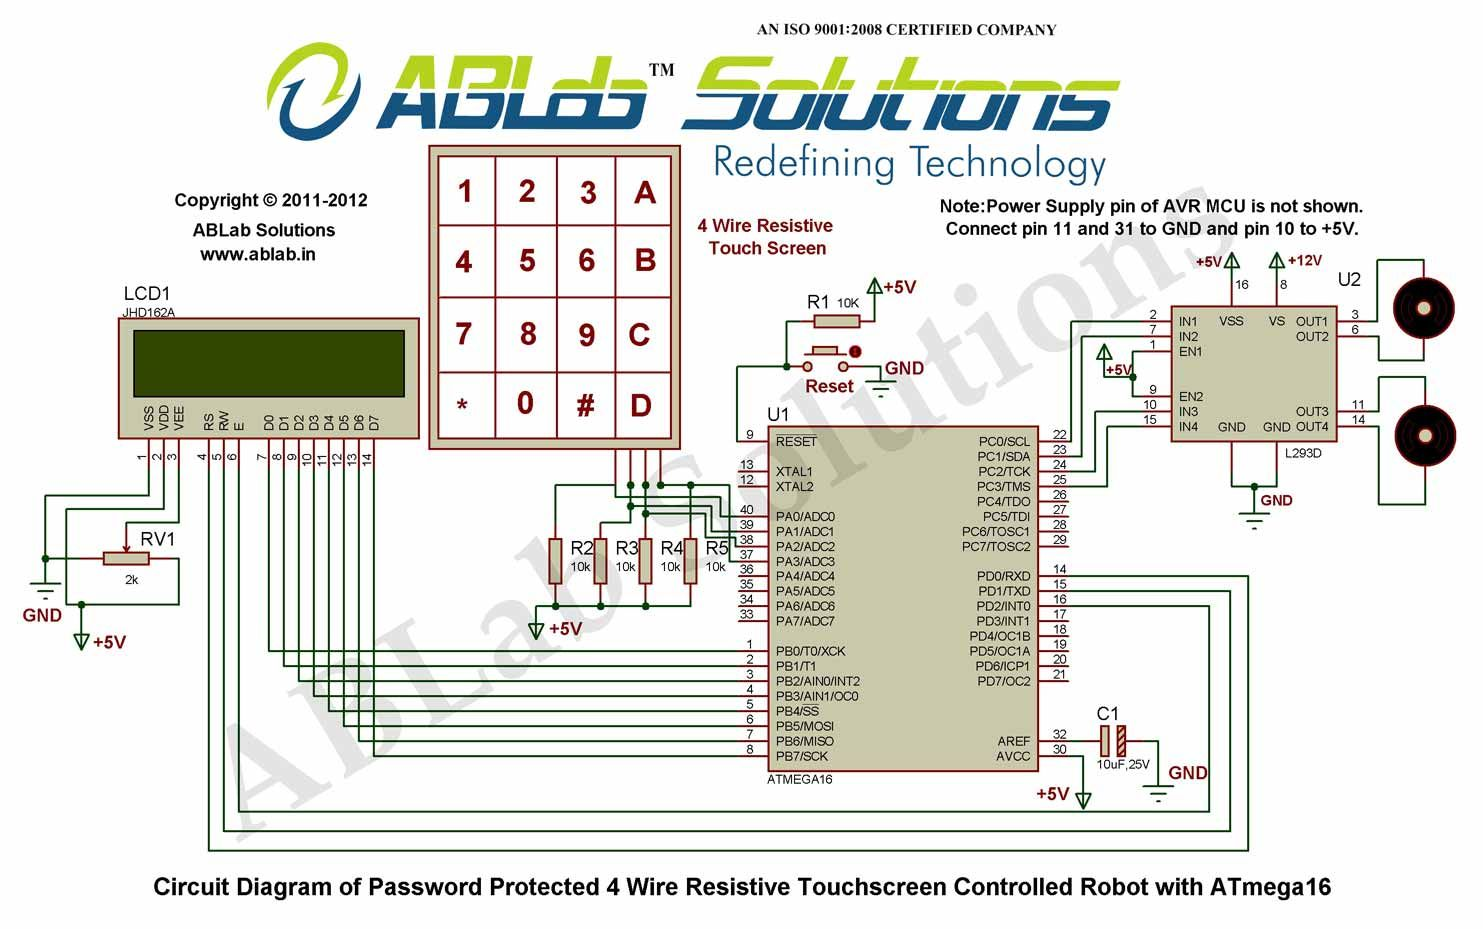 password protected 4 wire resistive touchscreen controlled robot touch screen circuit diagram [ 1483 x 929 Pixel ]